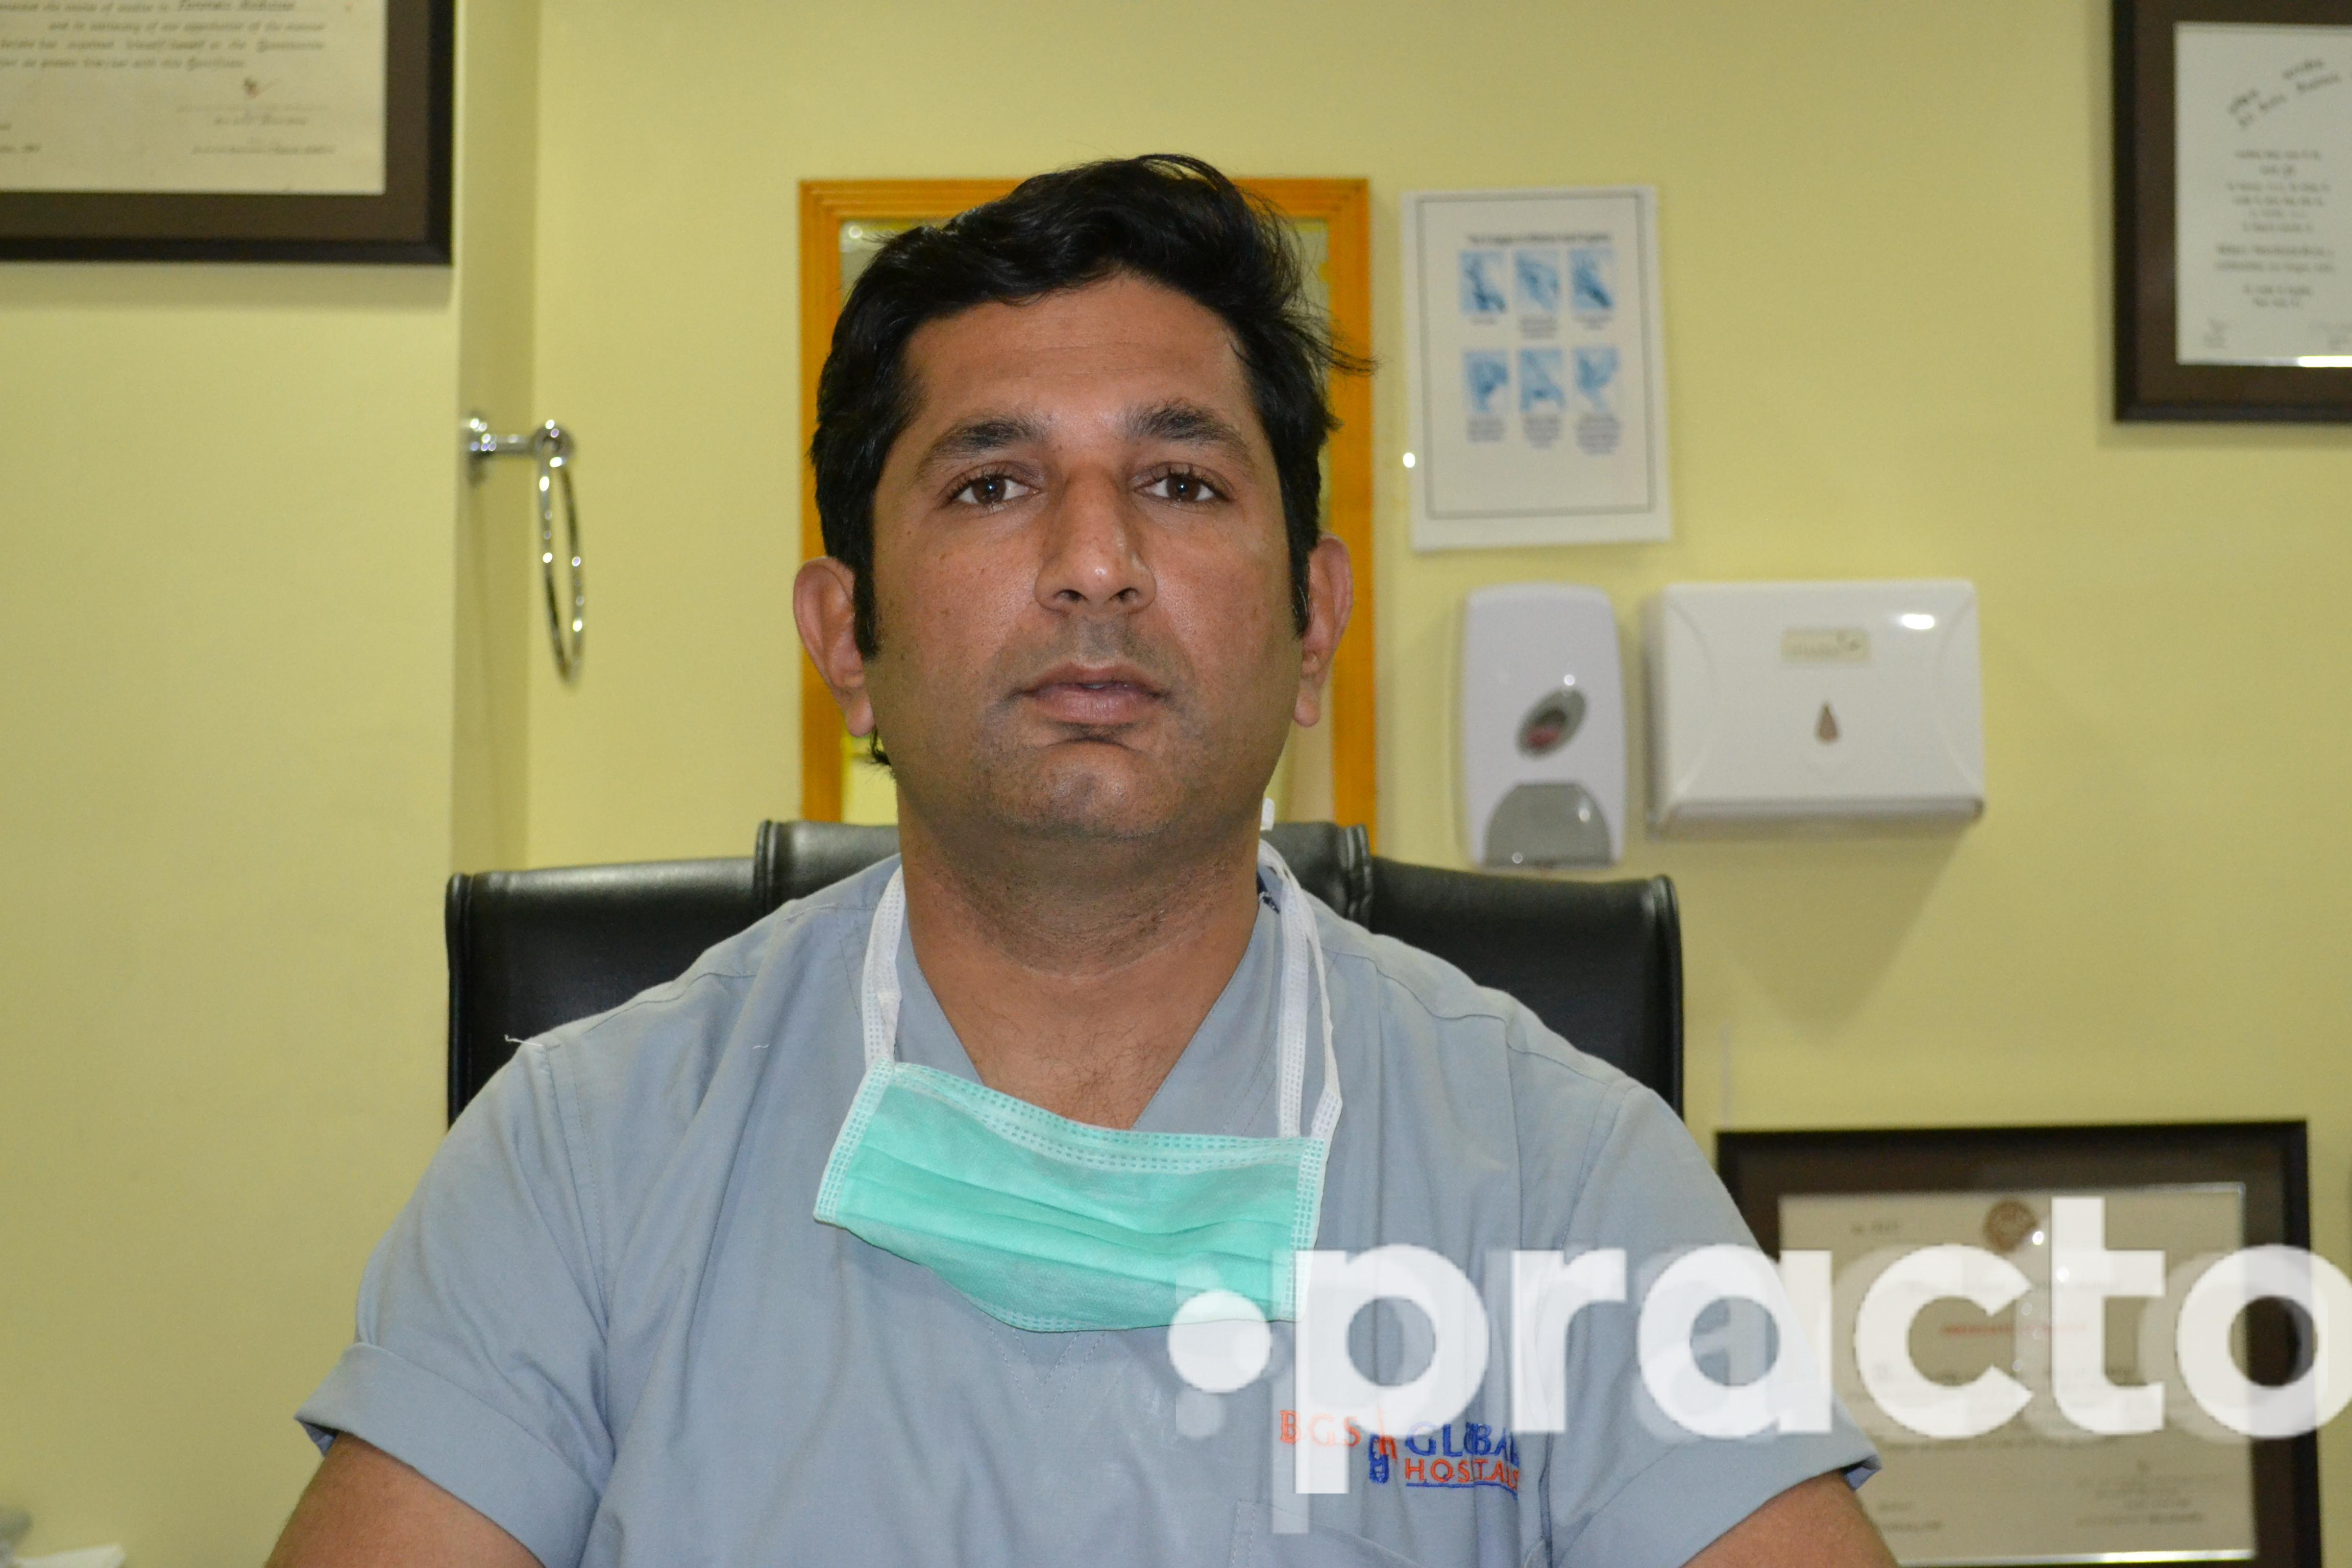 Dr. Bharat Dubey - Cardiothoracic Surgeon